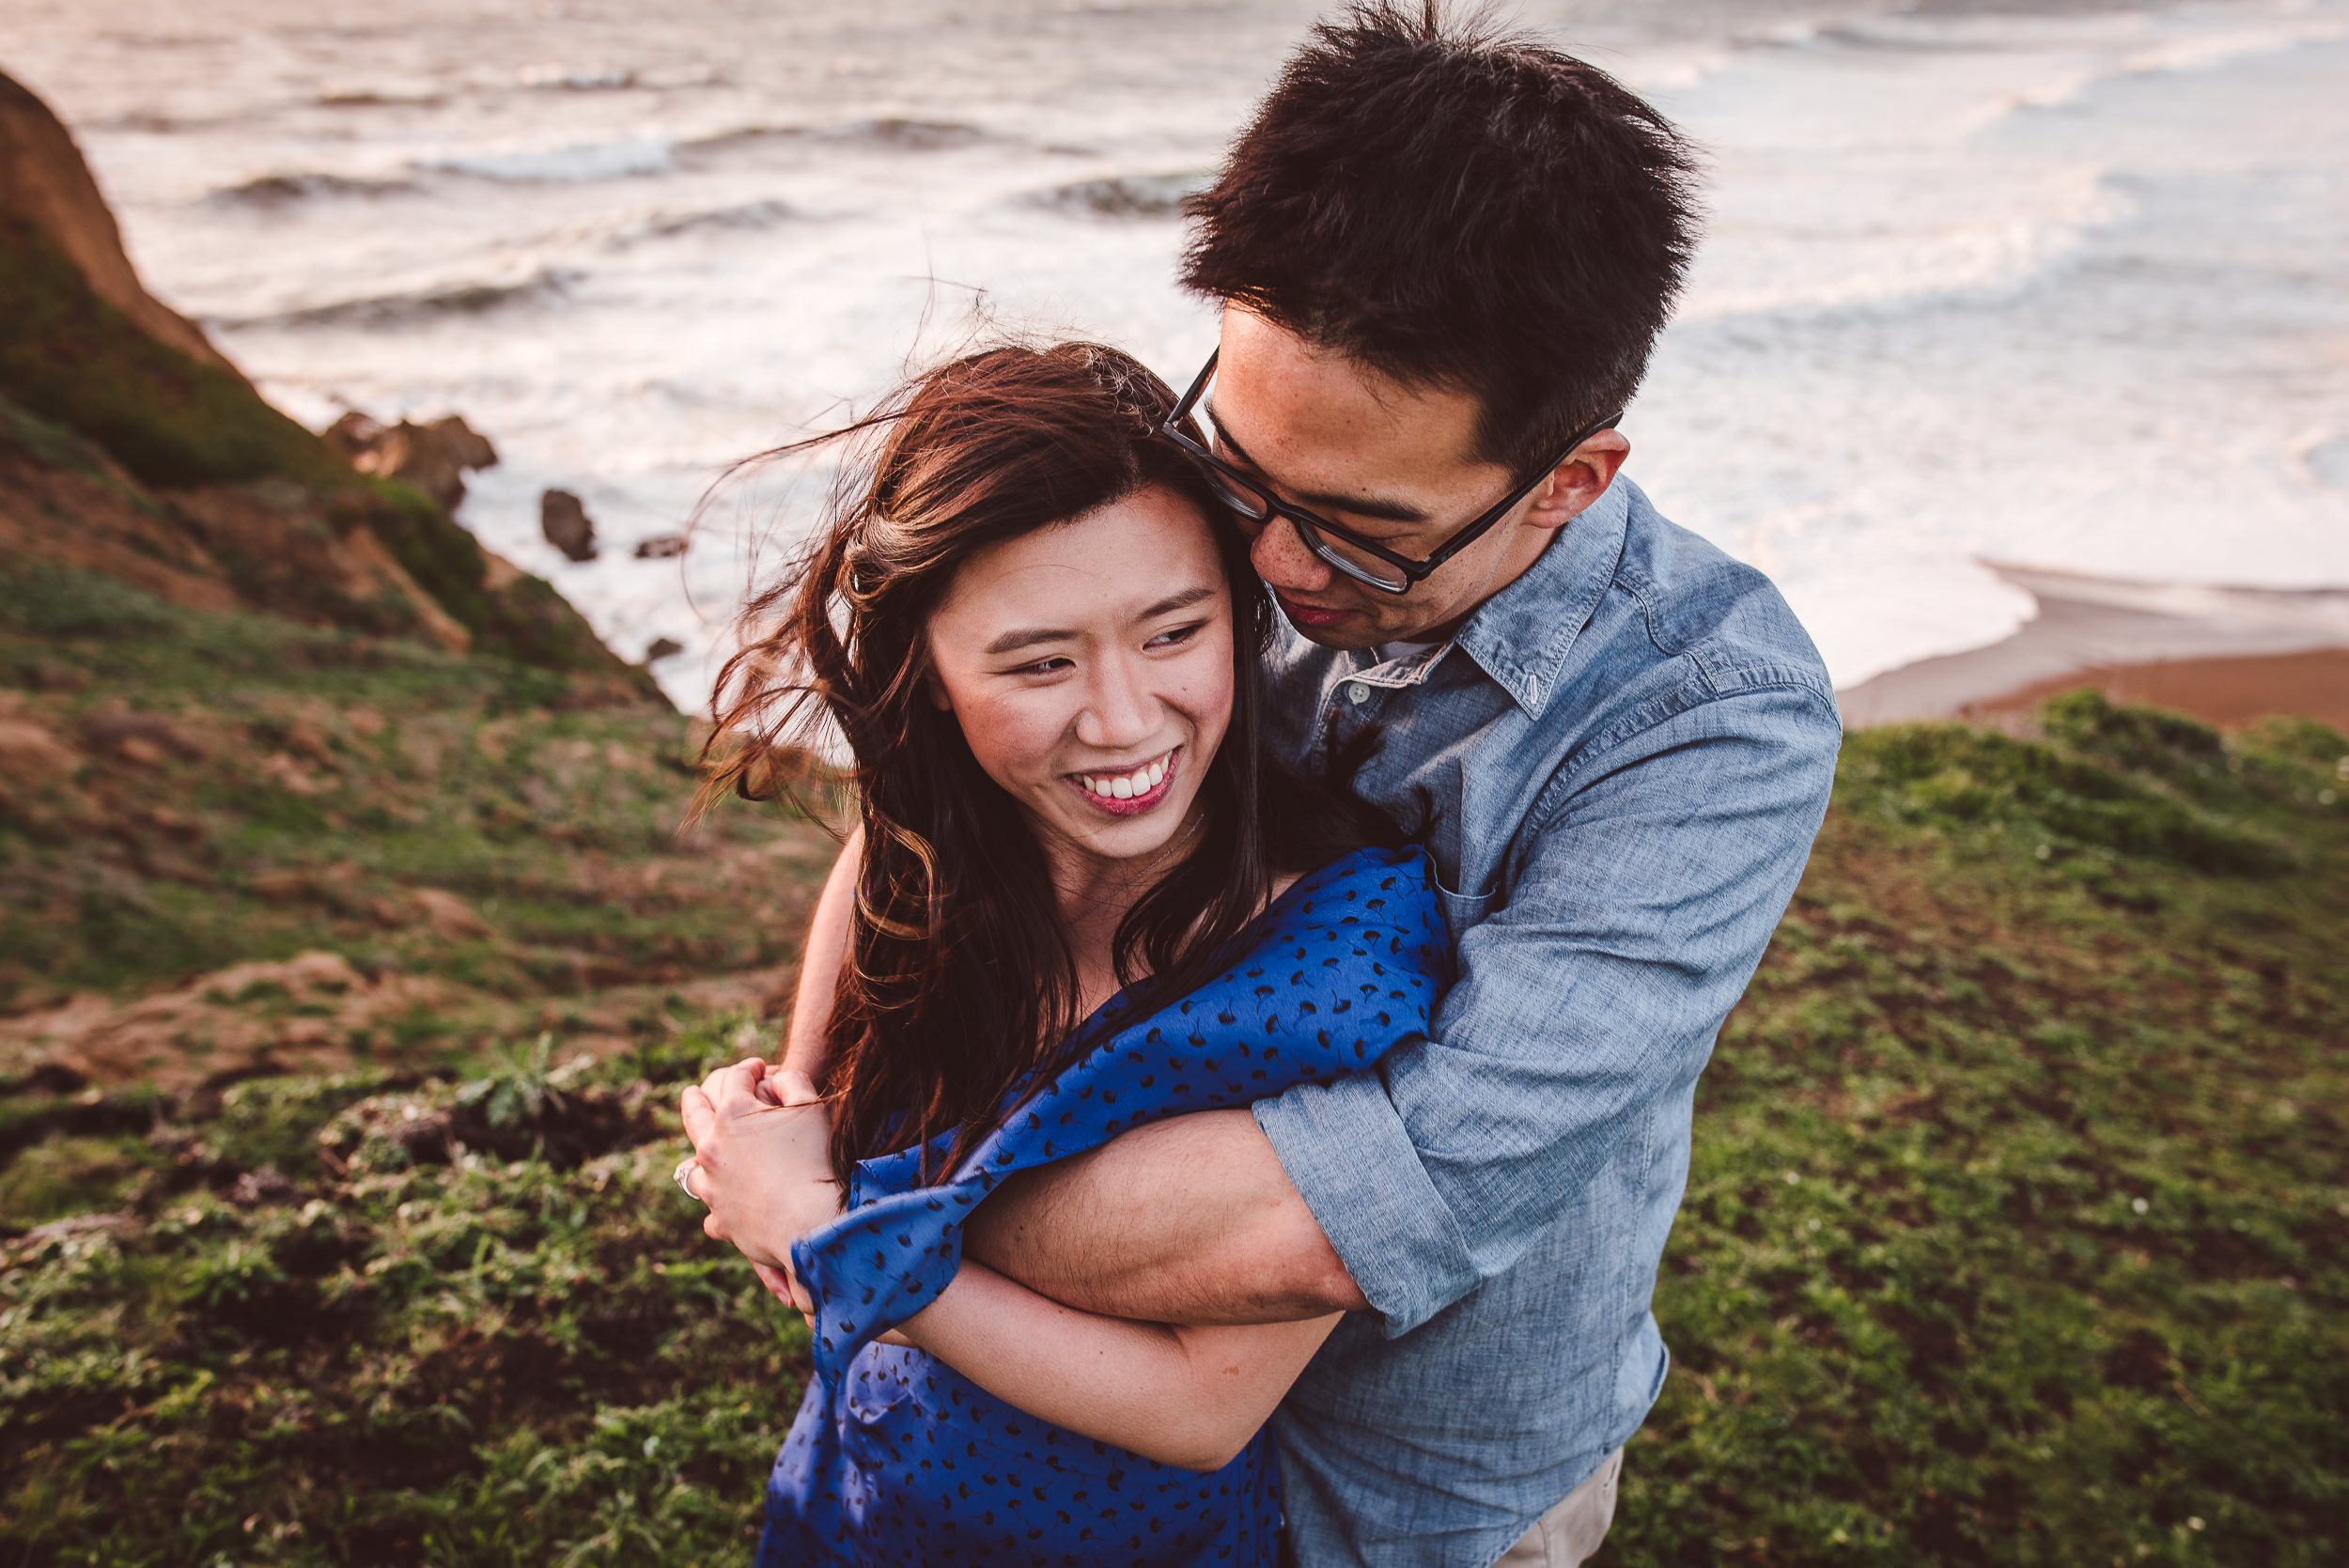 Mori-Point-Pacifica-Engagement-Photography-010.jpg